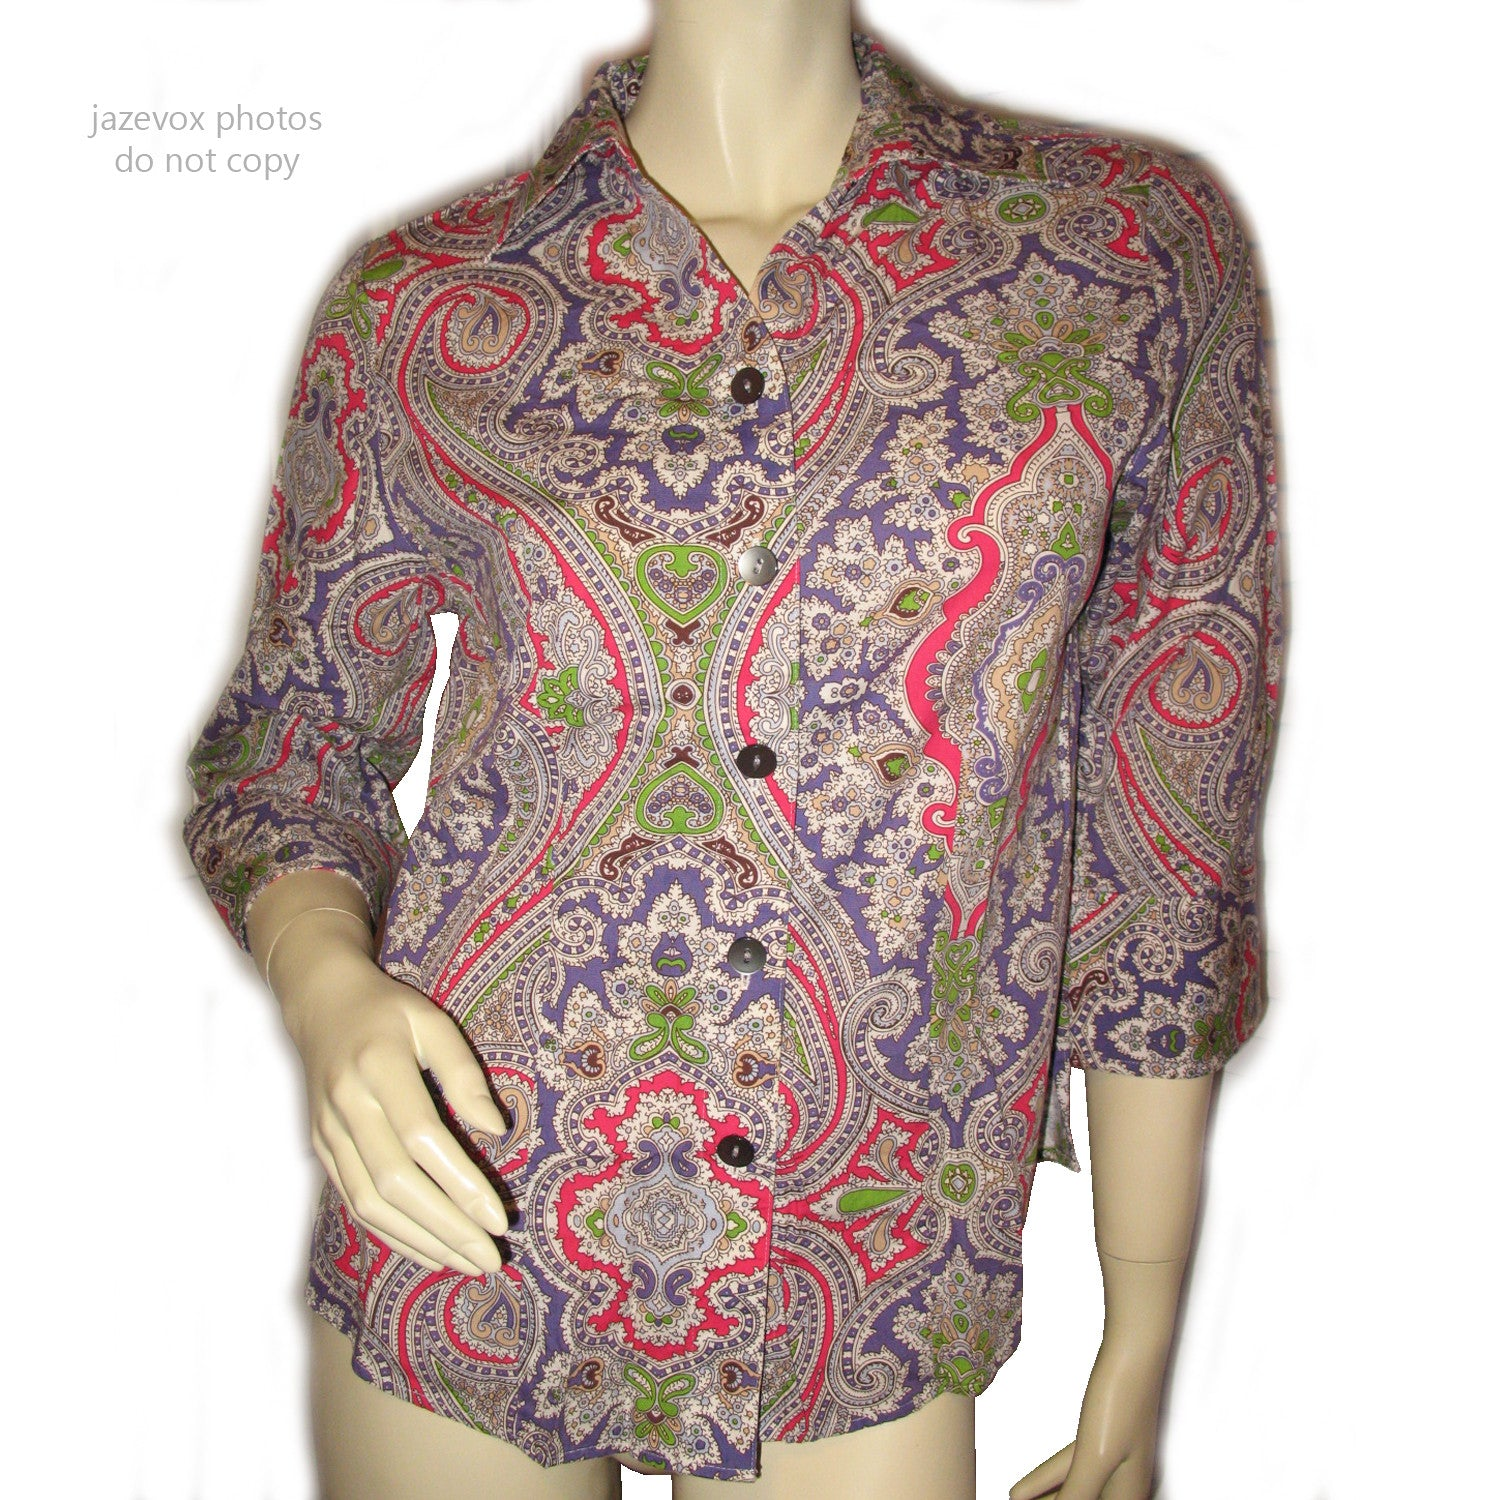 964d546fe3d5 Womens Tops Multi Color Colored PINK PURPLE WHITE GREEN Paisley Print 3/4  Sleeve Button Down Shirt TOP 6 Small